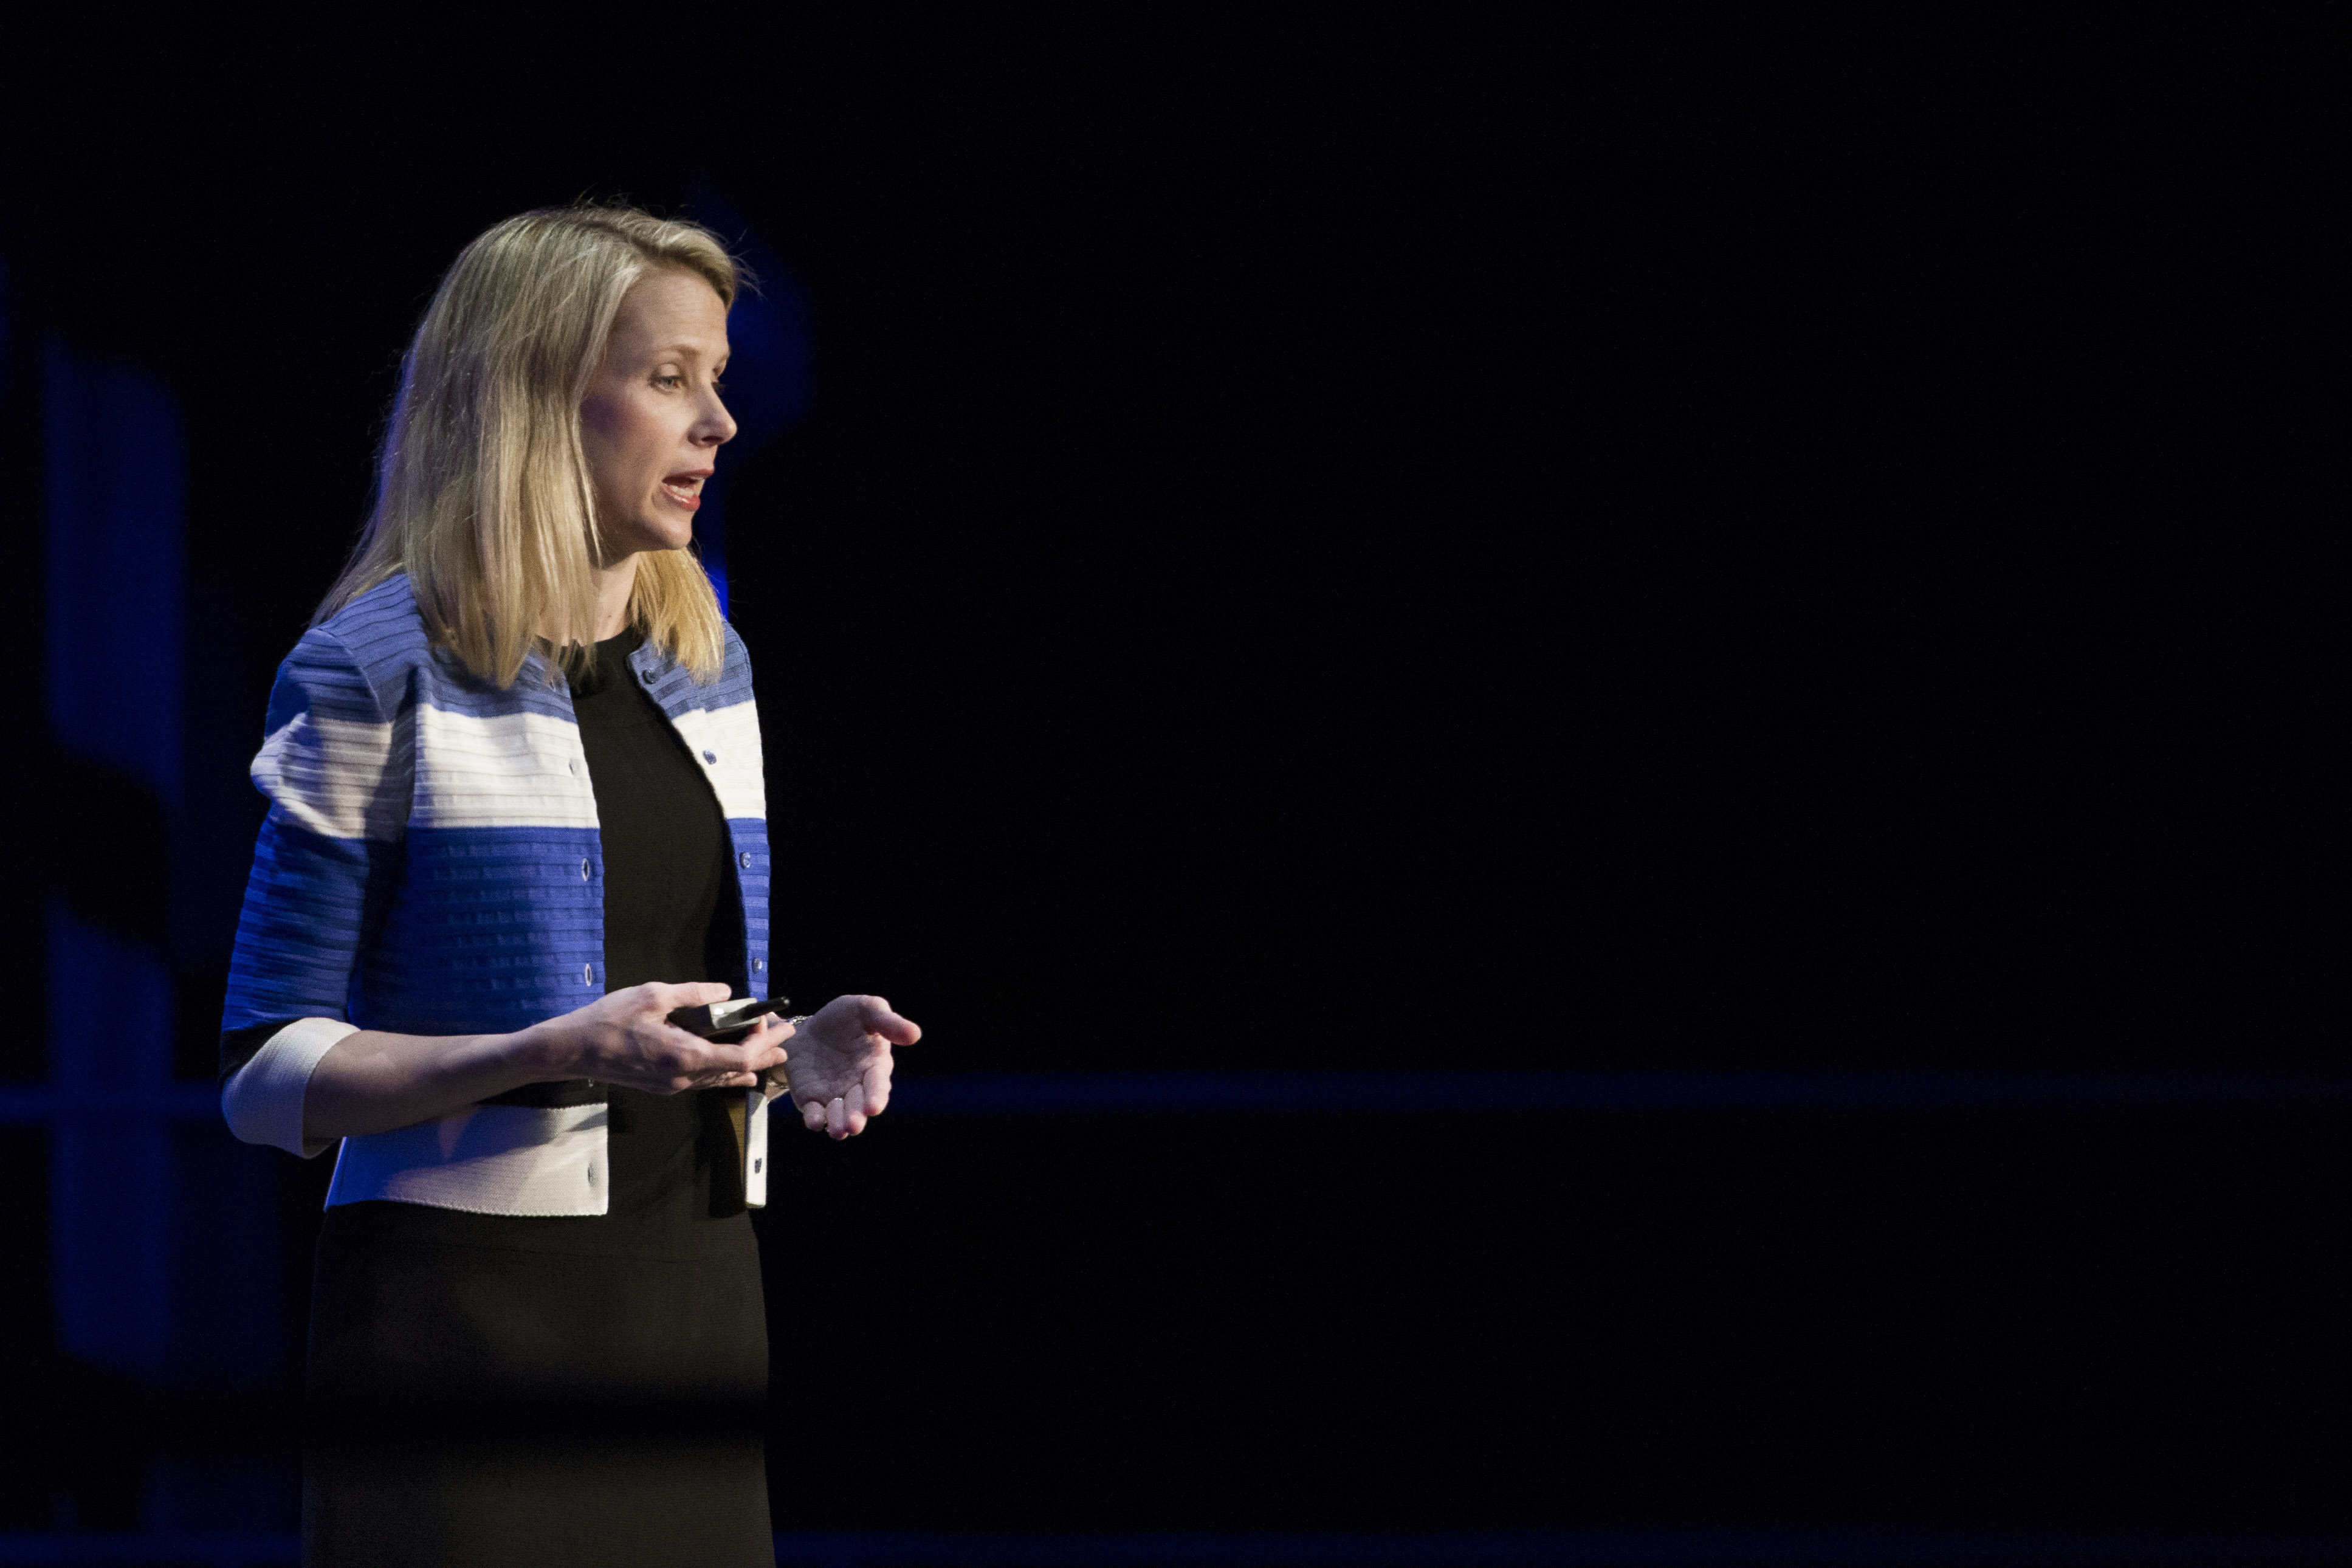 yahoo inc marissa mayer s challenge Marissa mayer's top 3 challenges as yahoo ceo  mayer will be taking on a huge challenge that figures to test her ability to find the right balance between her.